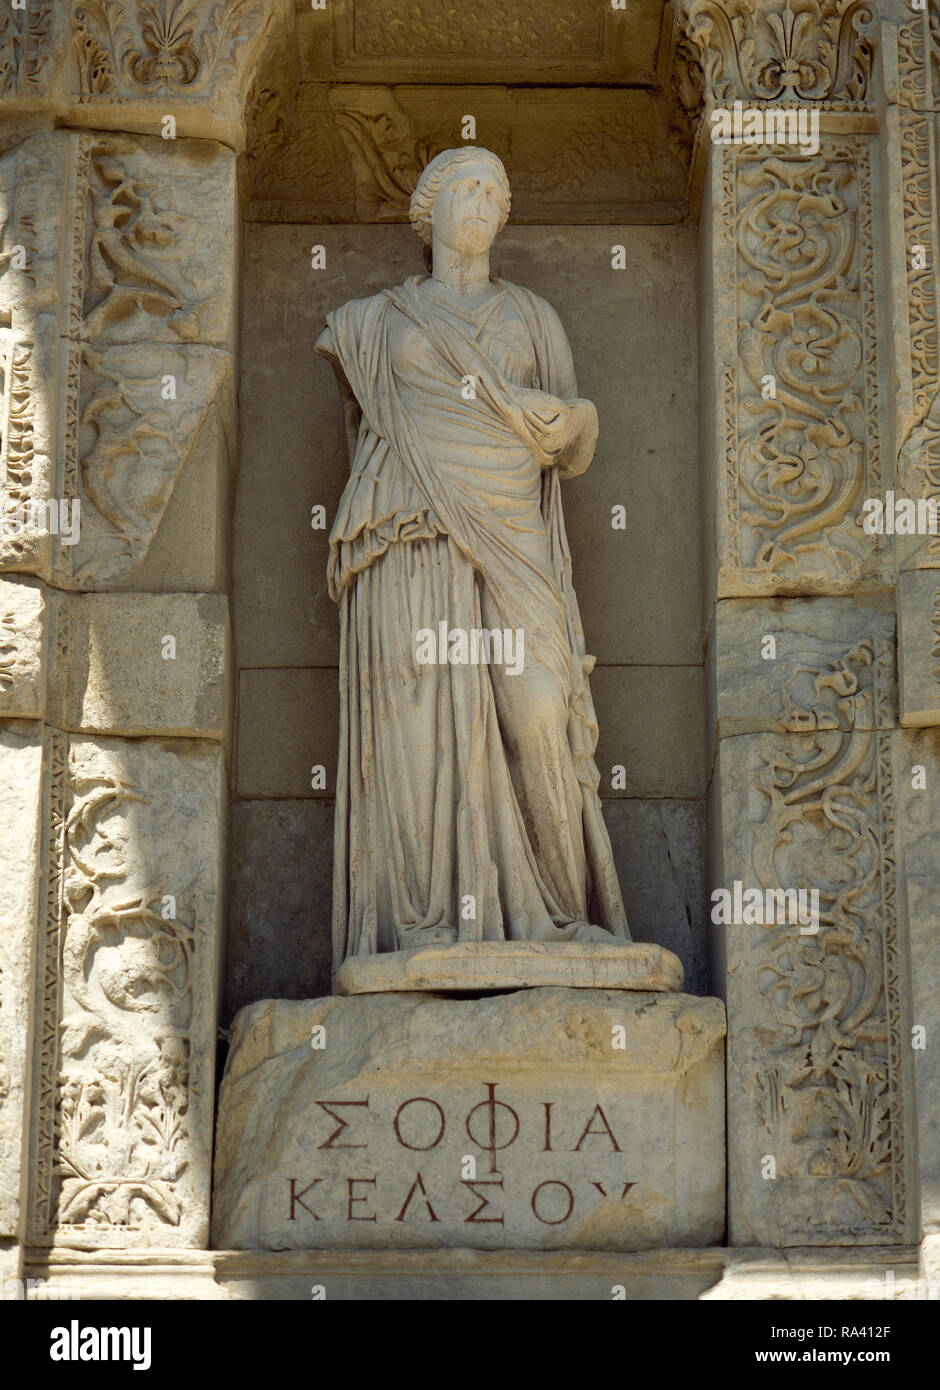 Turkey. Izmir province. Ephesus. Library of Celsus. Roman building built in honour of the Roman Senator Tiberius Julius Celsus Polemaeanus, 2nd century AD. Facade. Statue in the niche which symbolizes the Wisdom (Sophia). These are the virtues of Celsus. They are  copies of the originals. Anatolia. - Stock Image